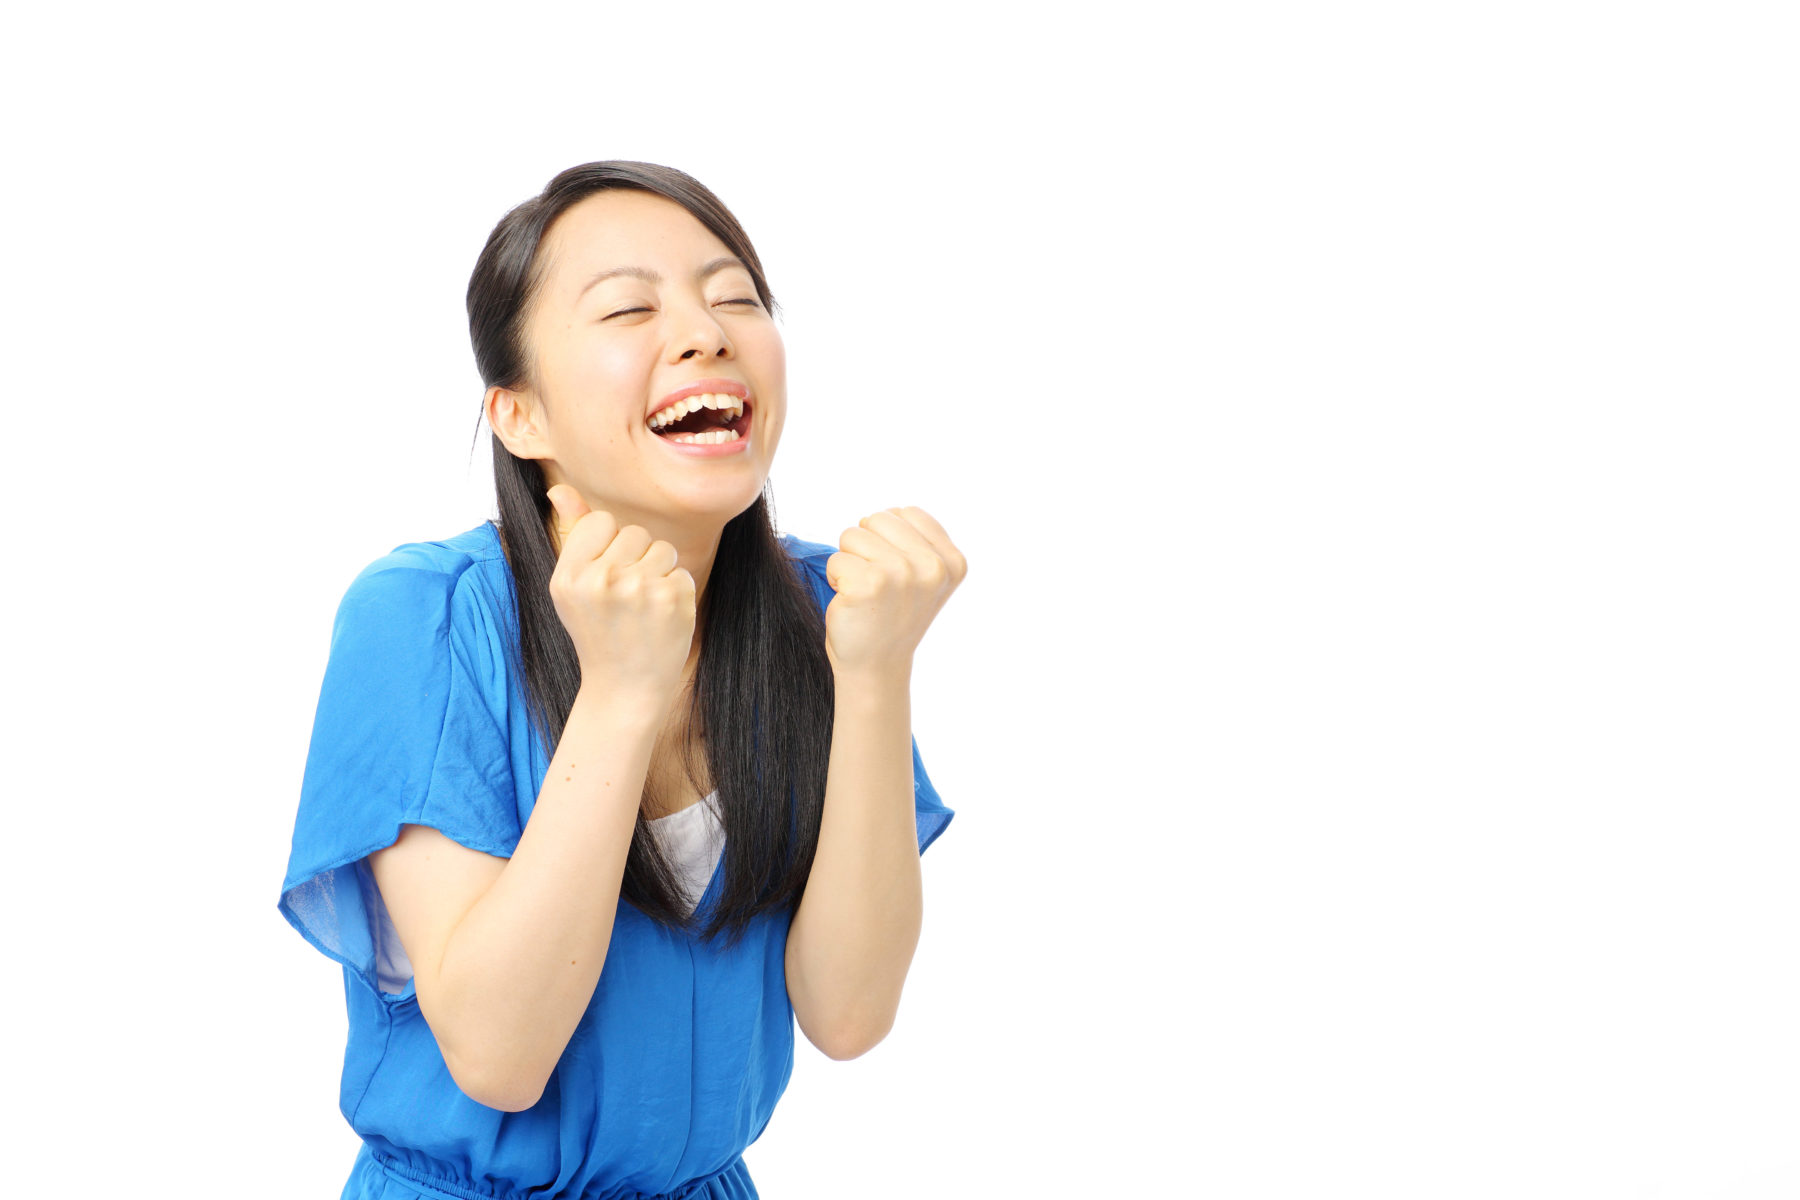 Woman excited about IBLCE score.